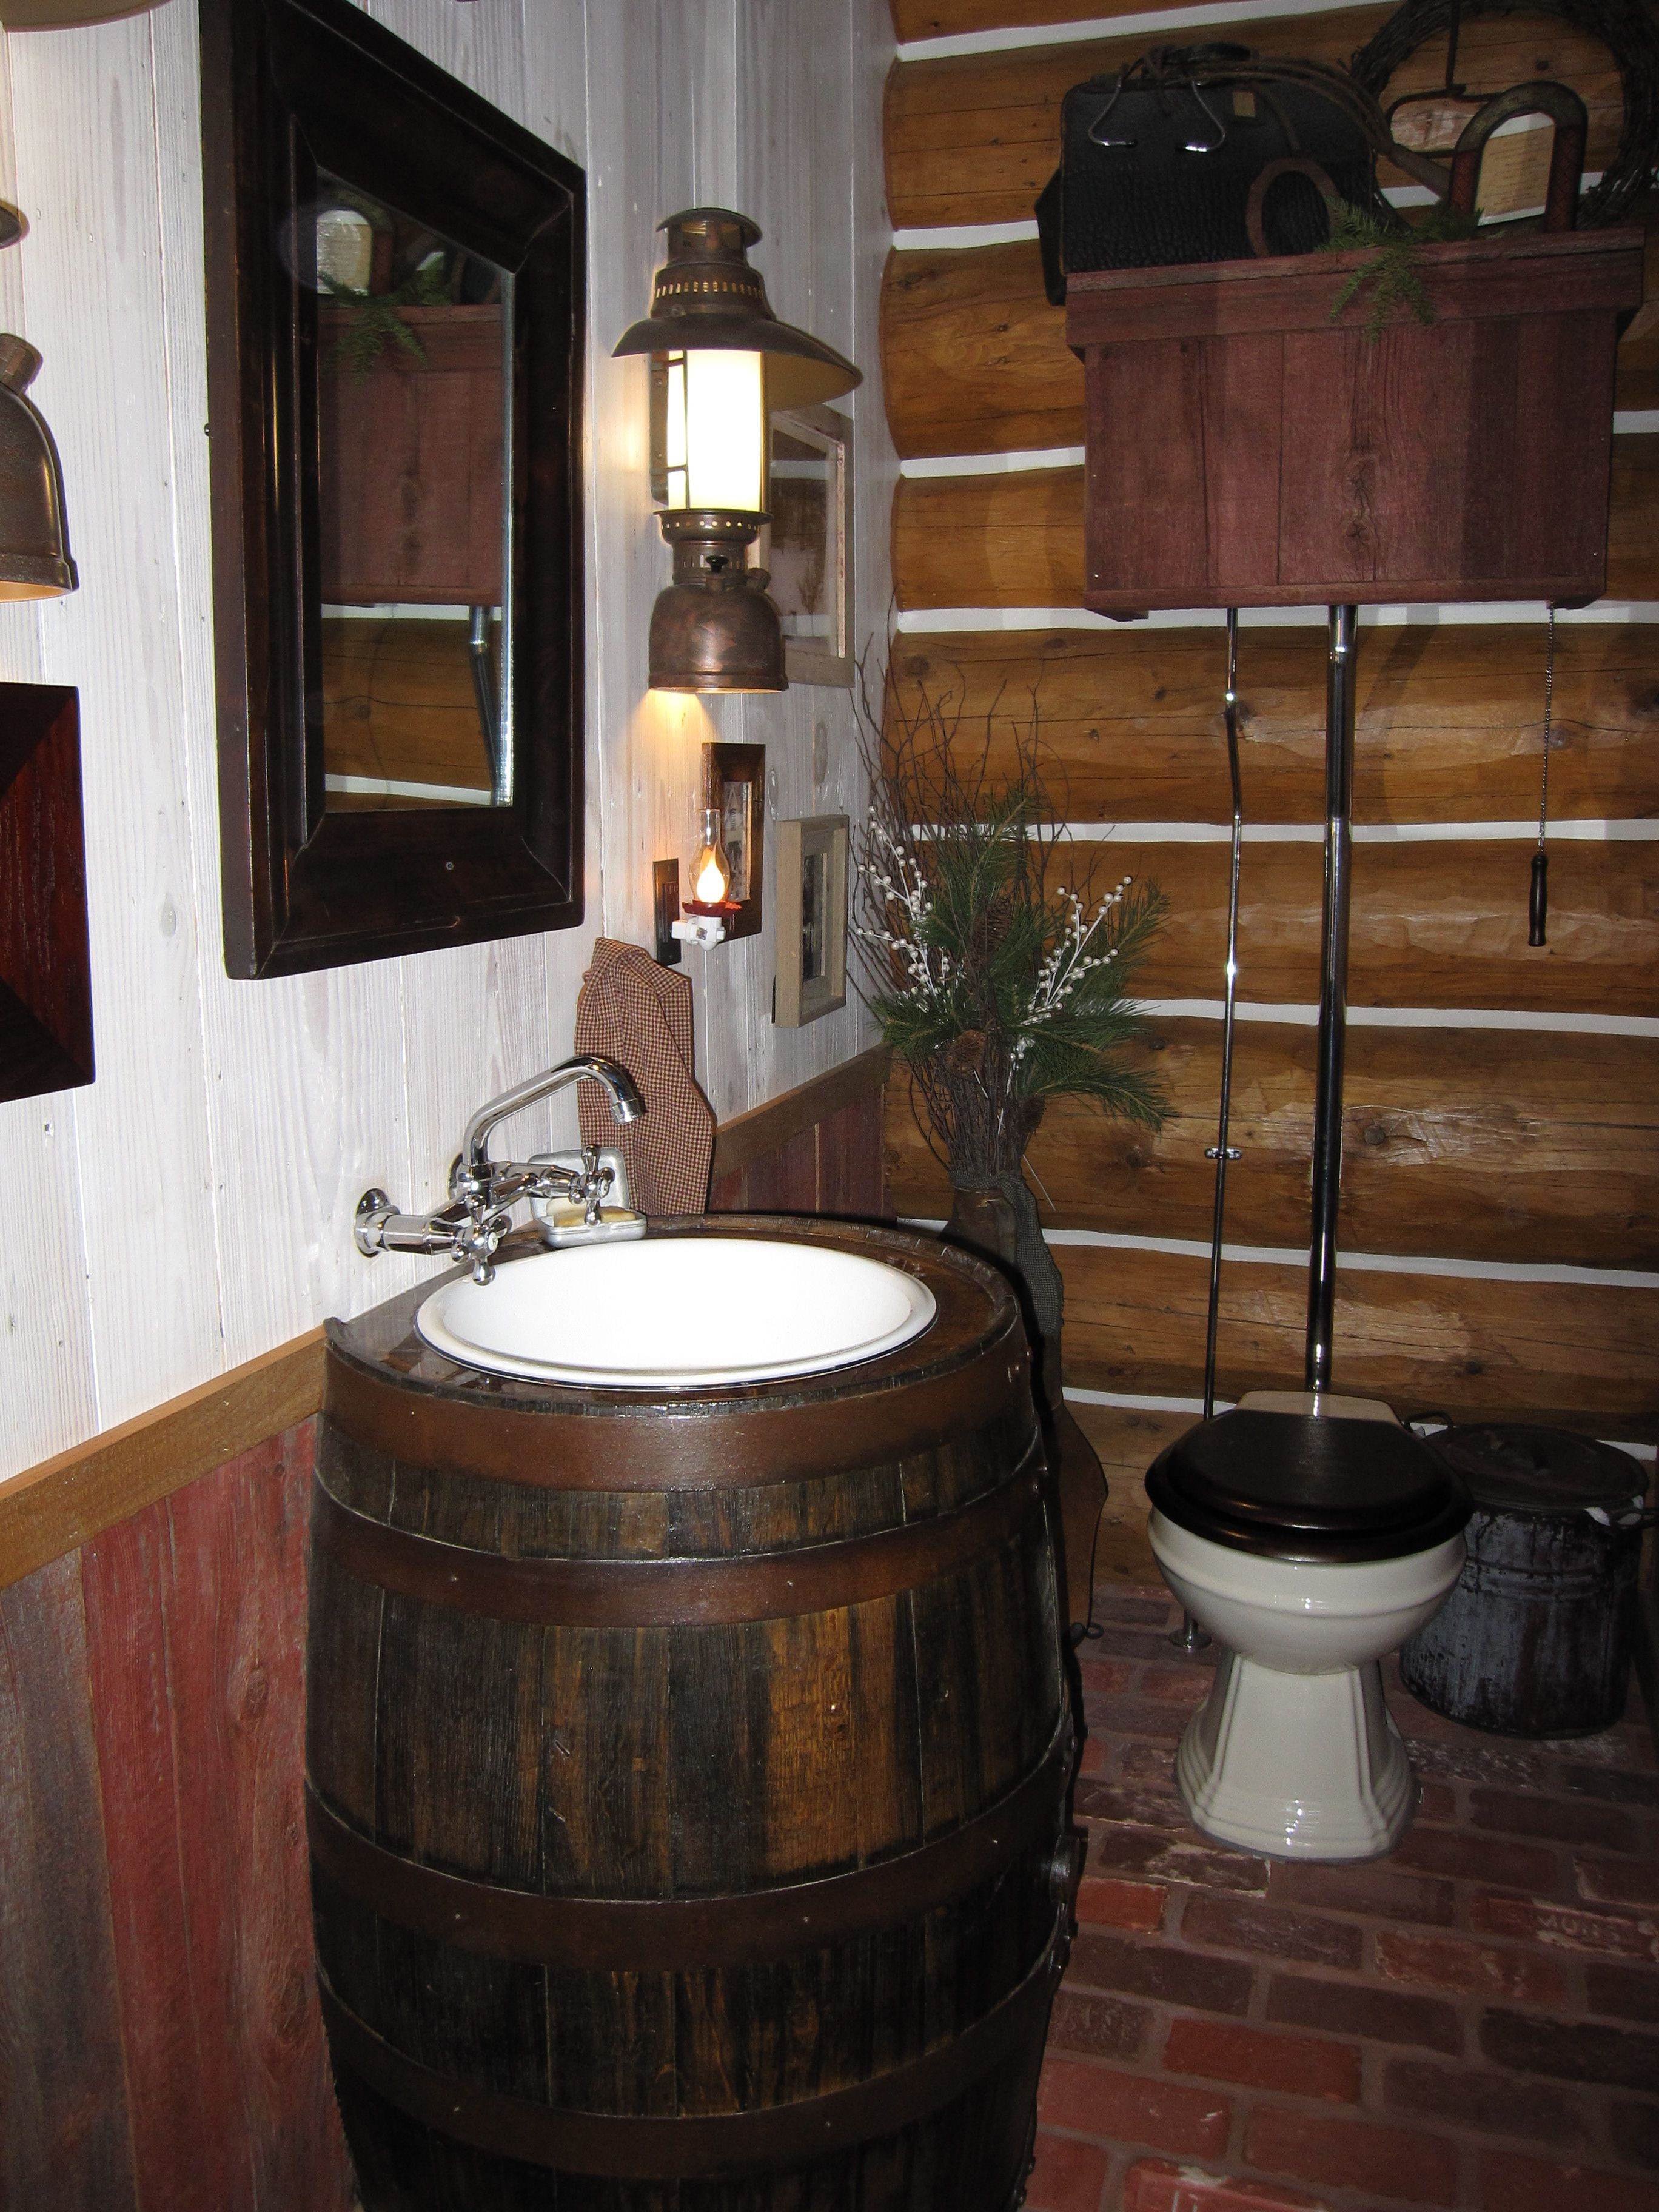 Rustikale Bäder Repurposed Whiskey Barrel In Our Powder Room | Rustikale Bäder, Rustikale Bad Eitelkeiten, Kleines Bad Renovierungen